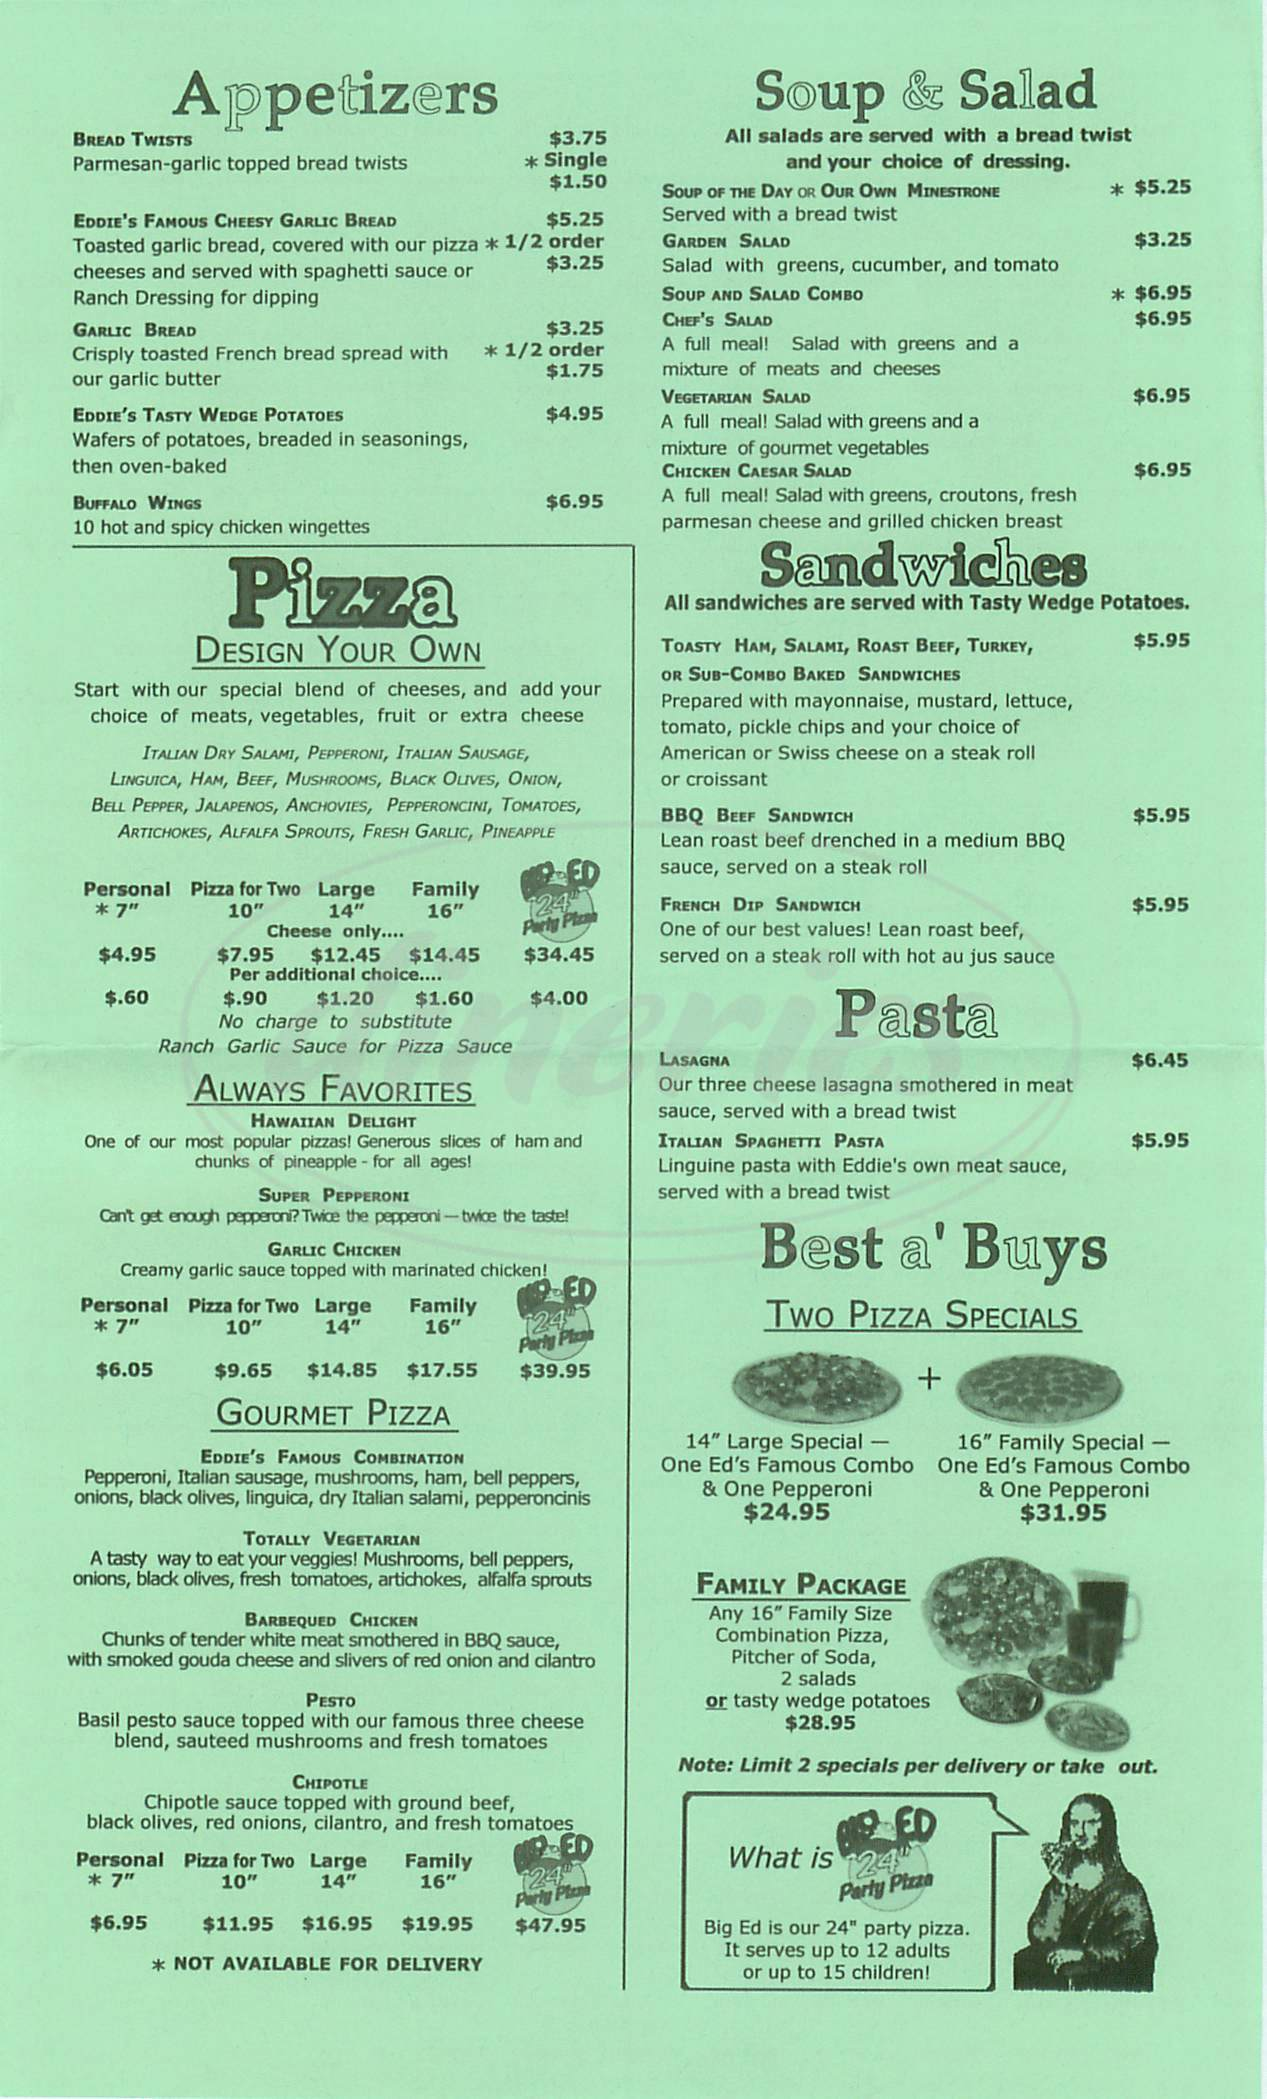 menu for Eddies Pizza Café